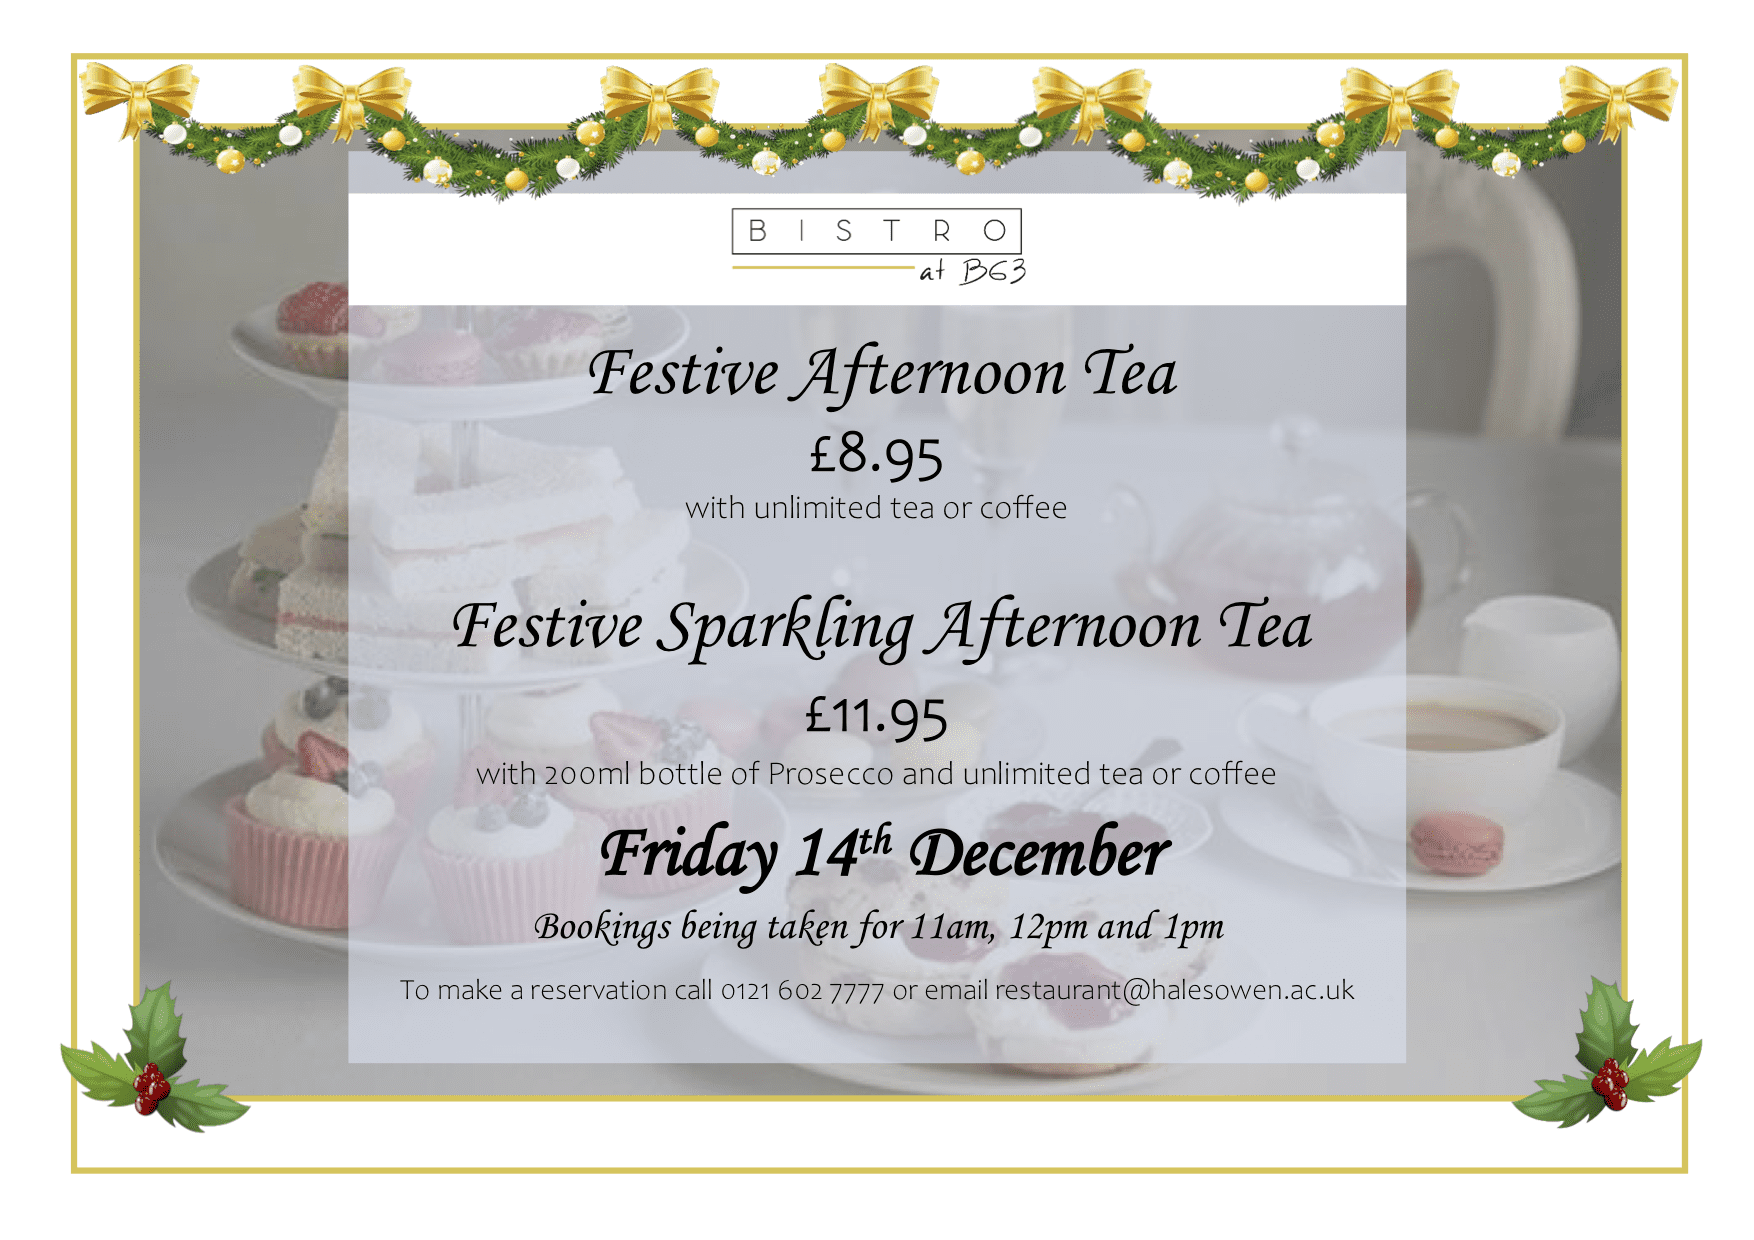 Festive afternoon tea menu